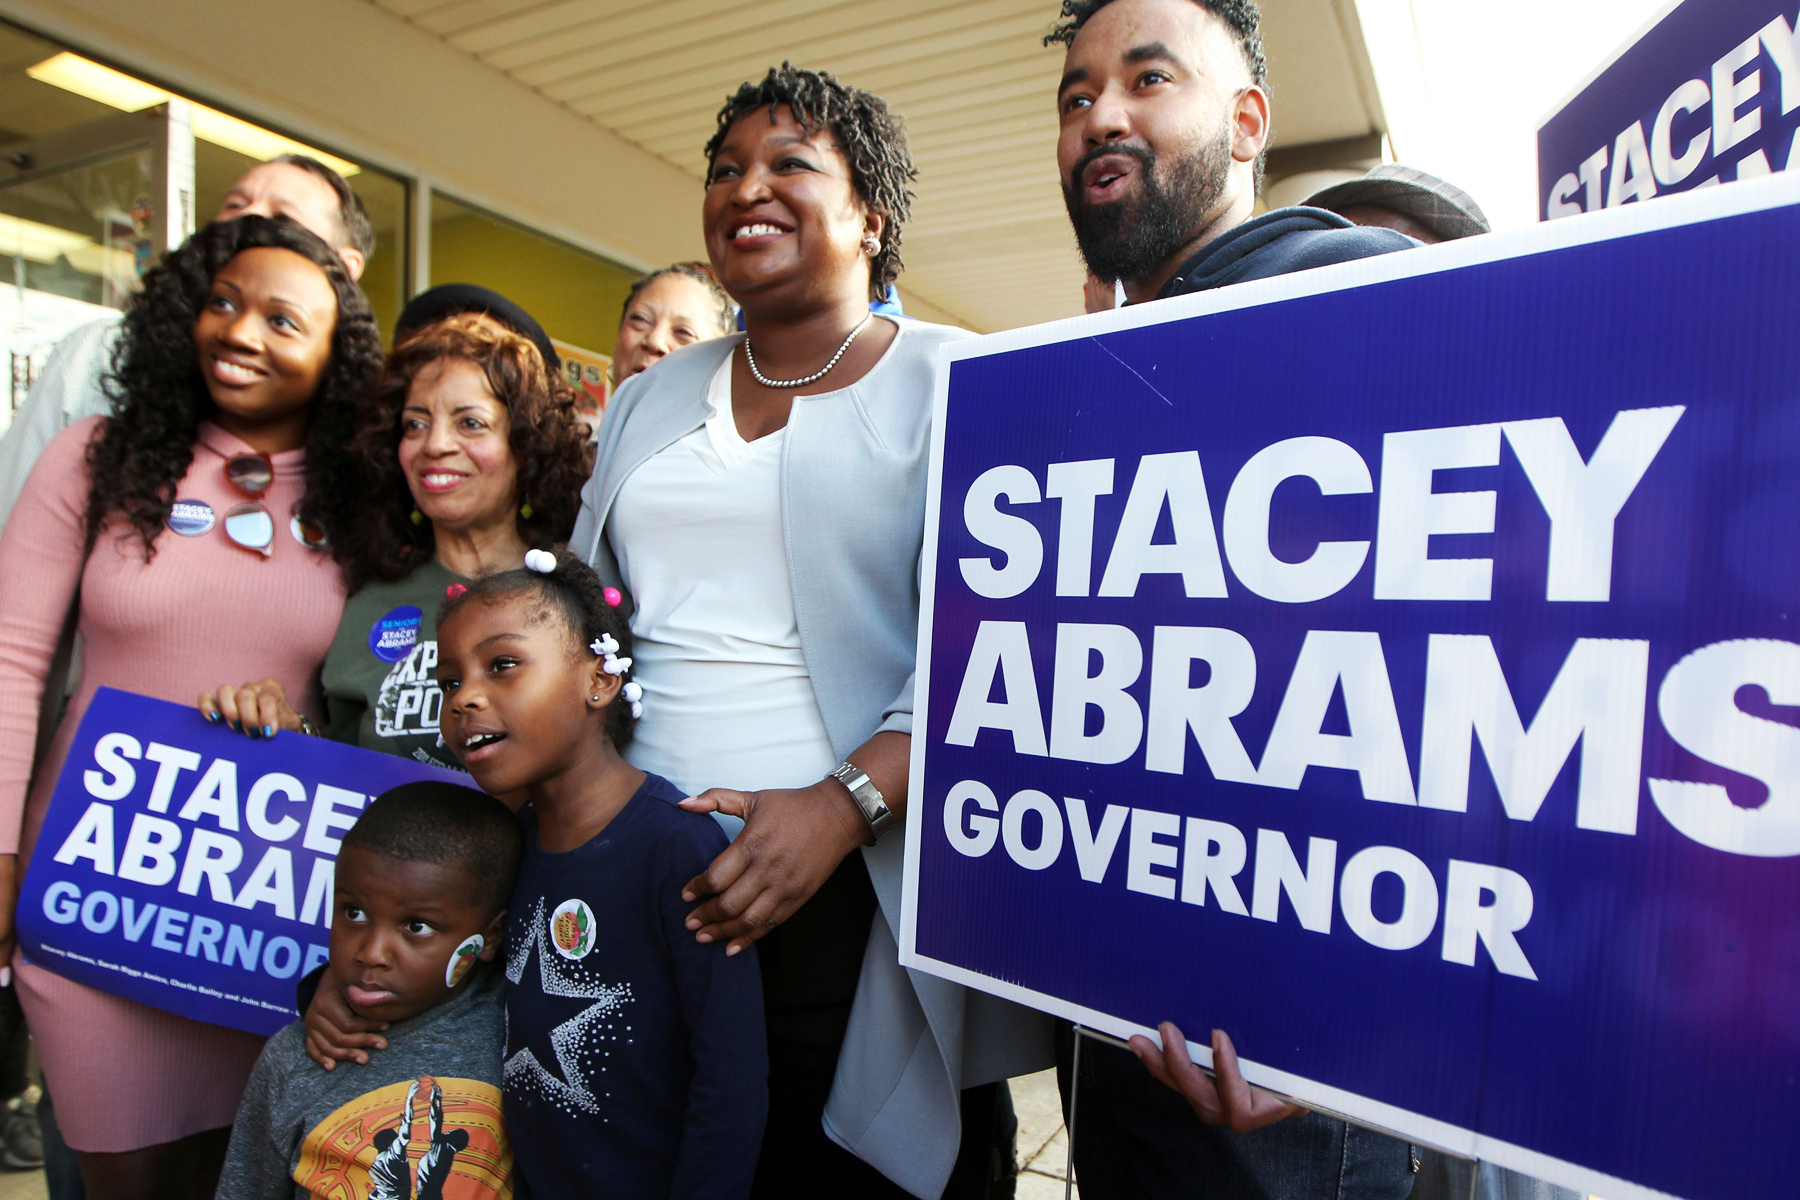 Democratic Gubernatorial candidate Stacey Abrams makes her final campaign stop in Atlanta, Georgia USA, 06 November 2018. Abrams is facing Republican candidate Brian Kemp in the 06 November general election. Voters across the nation are selecting who will represent them on local, state and national levels.2018 Midterm election in Georgia, Atlanta, USA - 06 Nov 2018